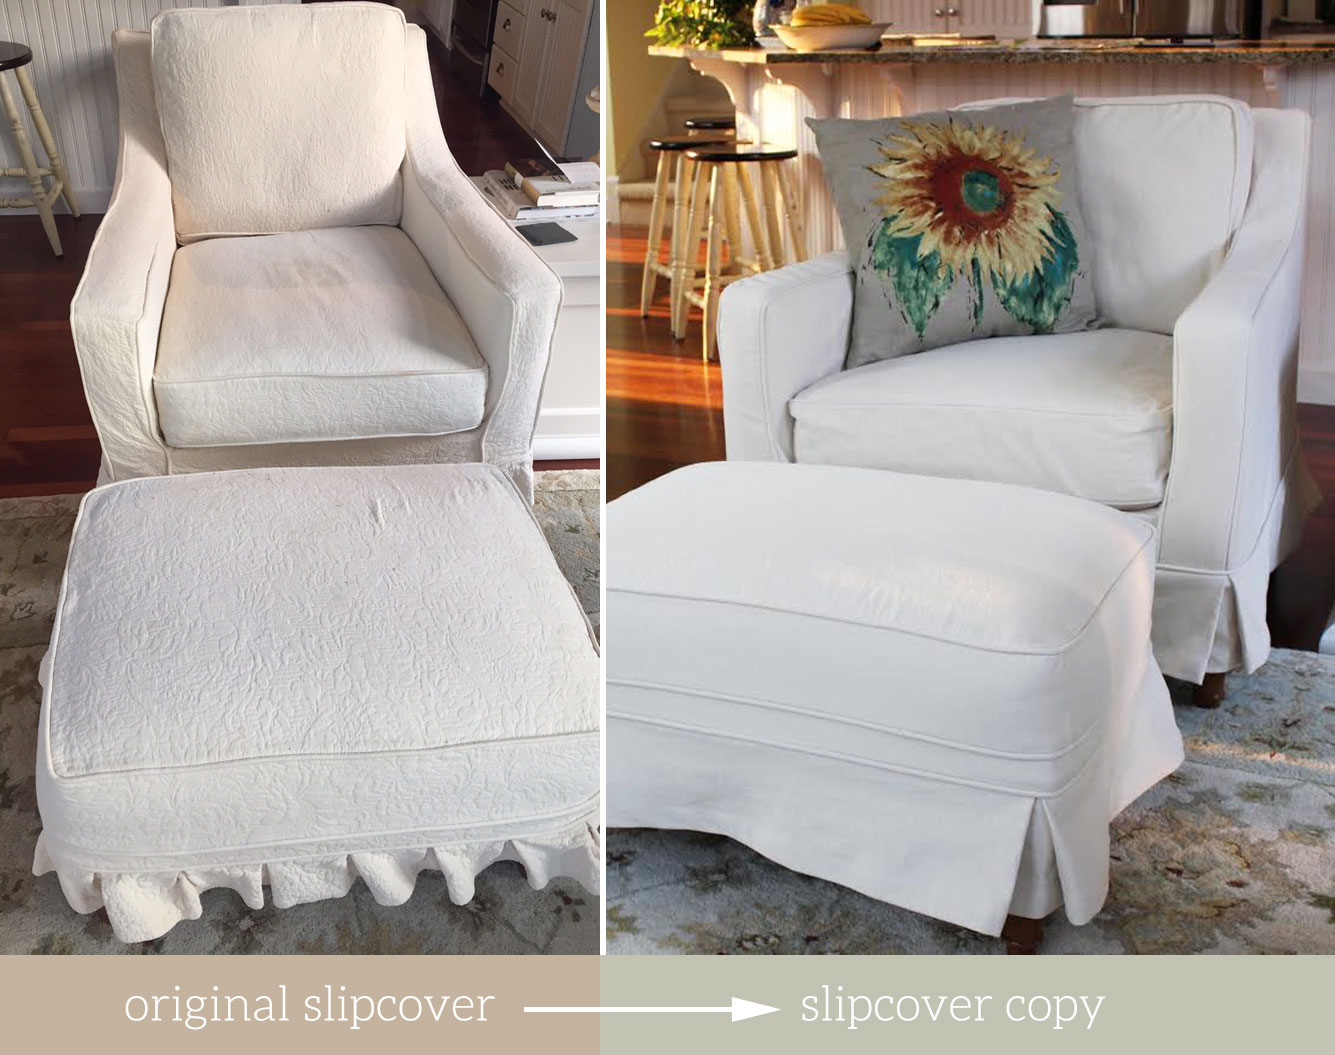 Slipcover For Oversized Chair And Ottoman The Slipcover Maker Custom Slipcovers Tailored To Fit